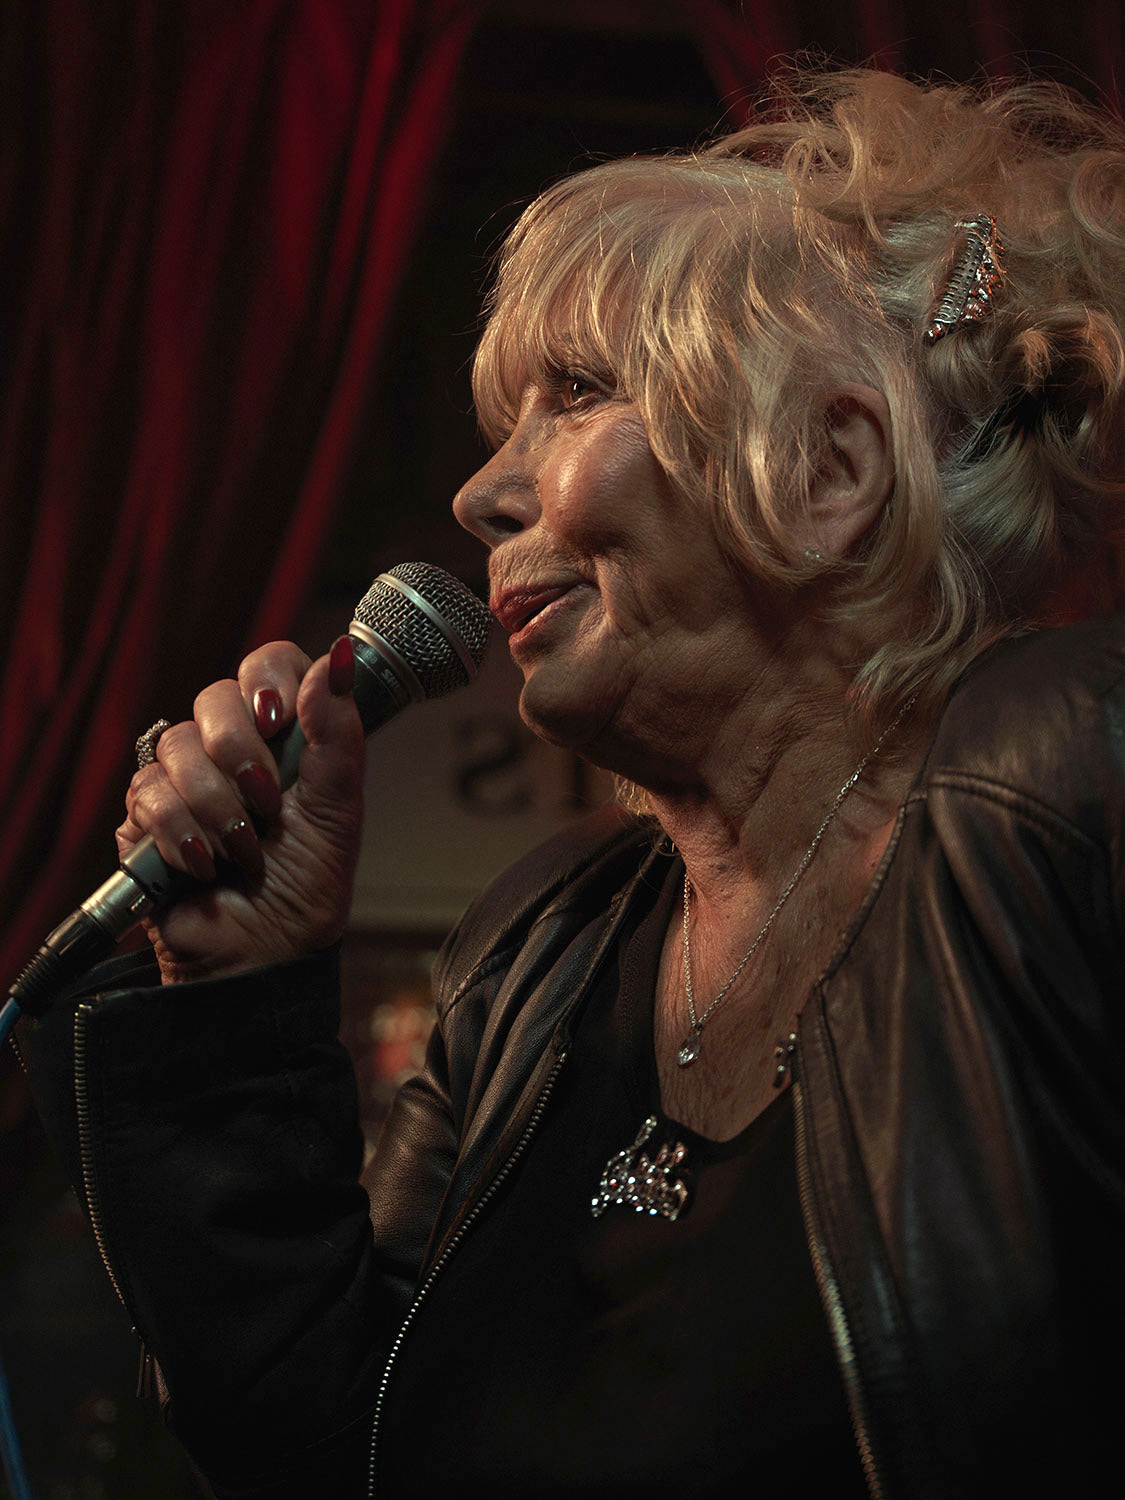 Helen Keating singing at pub. Image from Last of the Old Crooners, Palm Tree pub by Tom Oldham